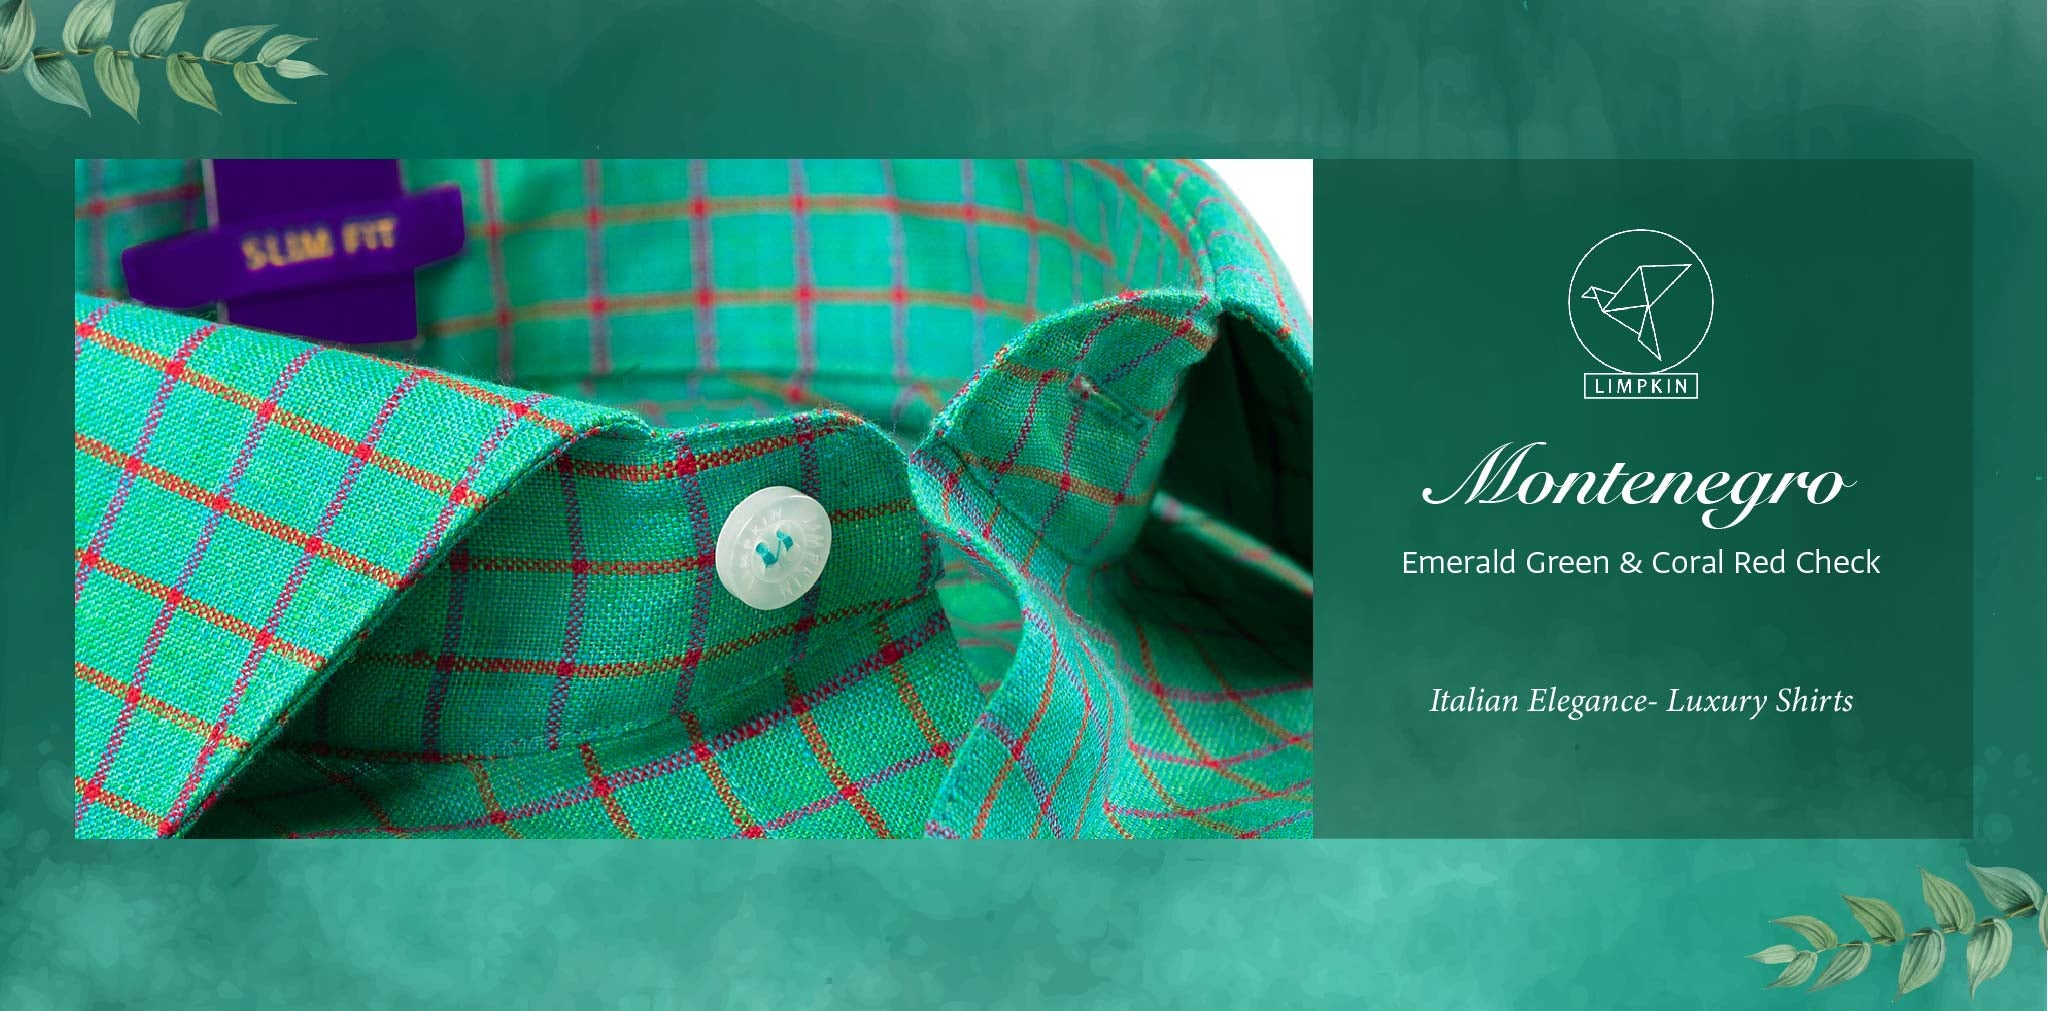 Montenegro- Emerald Green & Coral Red Check- 66's Lea Pure Luxury Linen- Delivery from 17th May - Banner